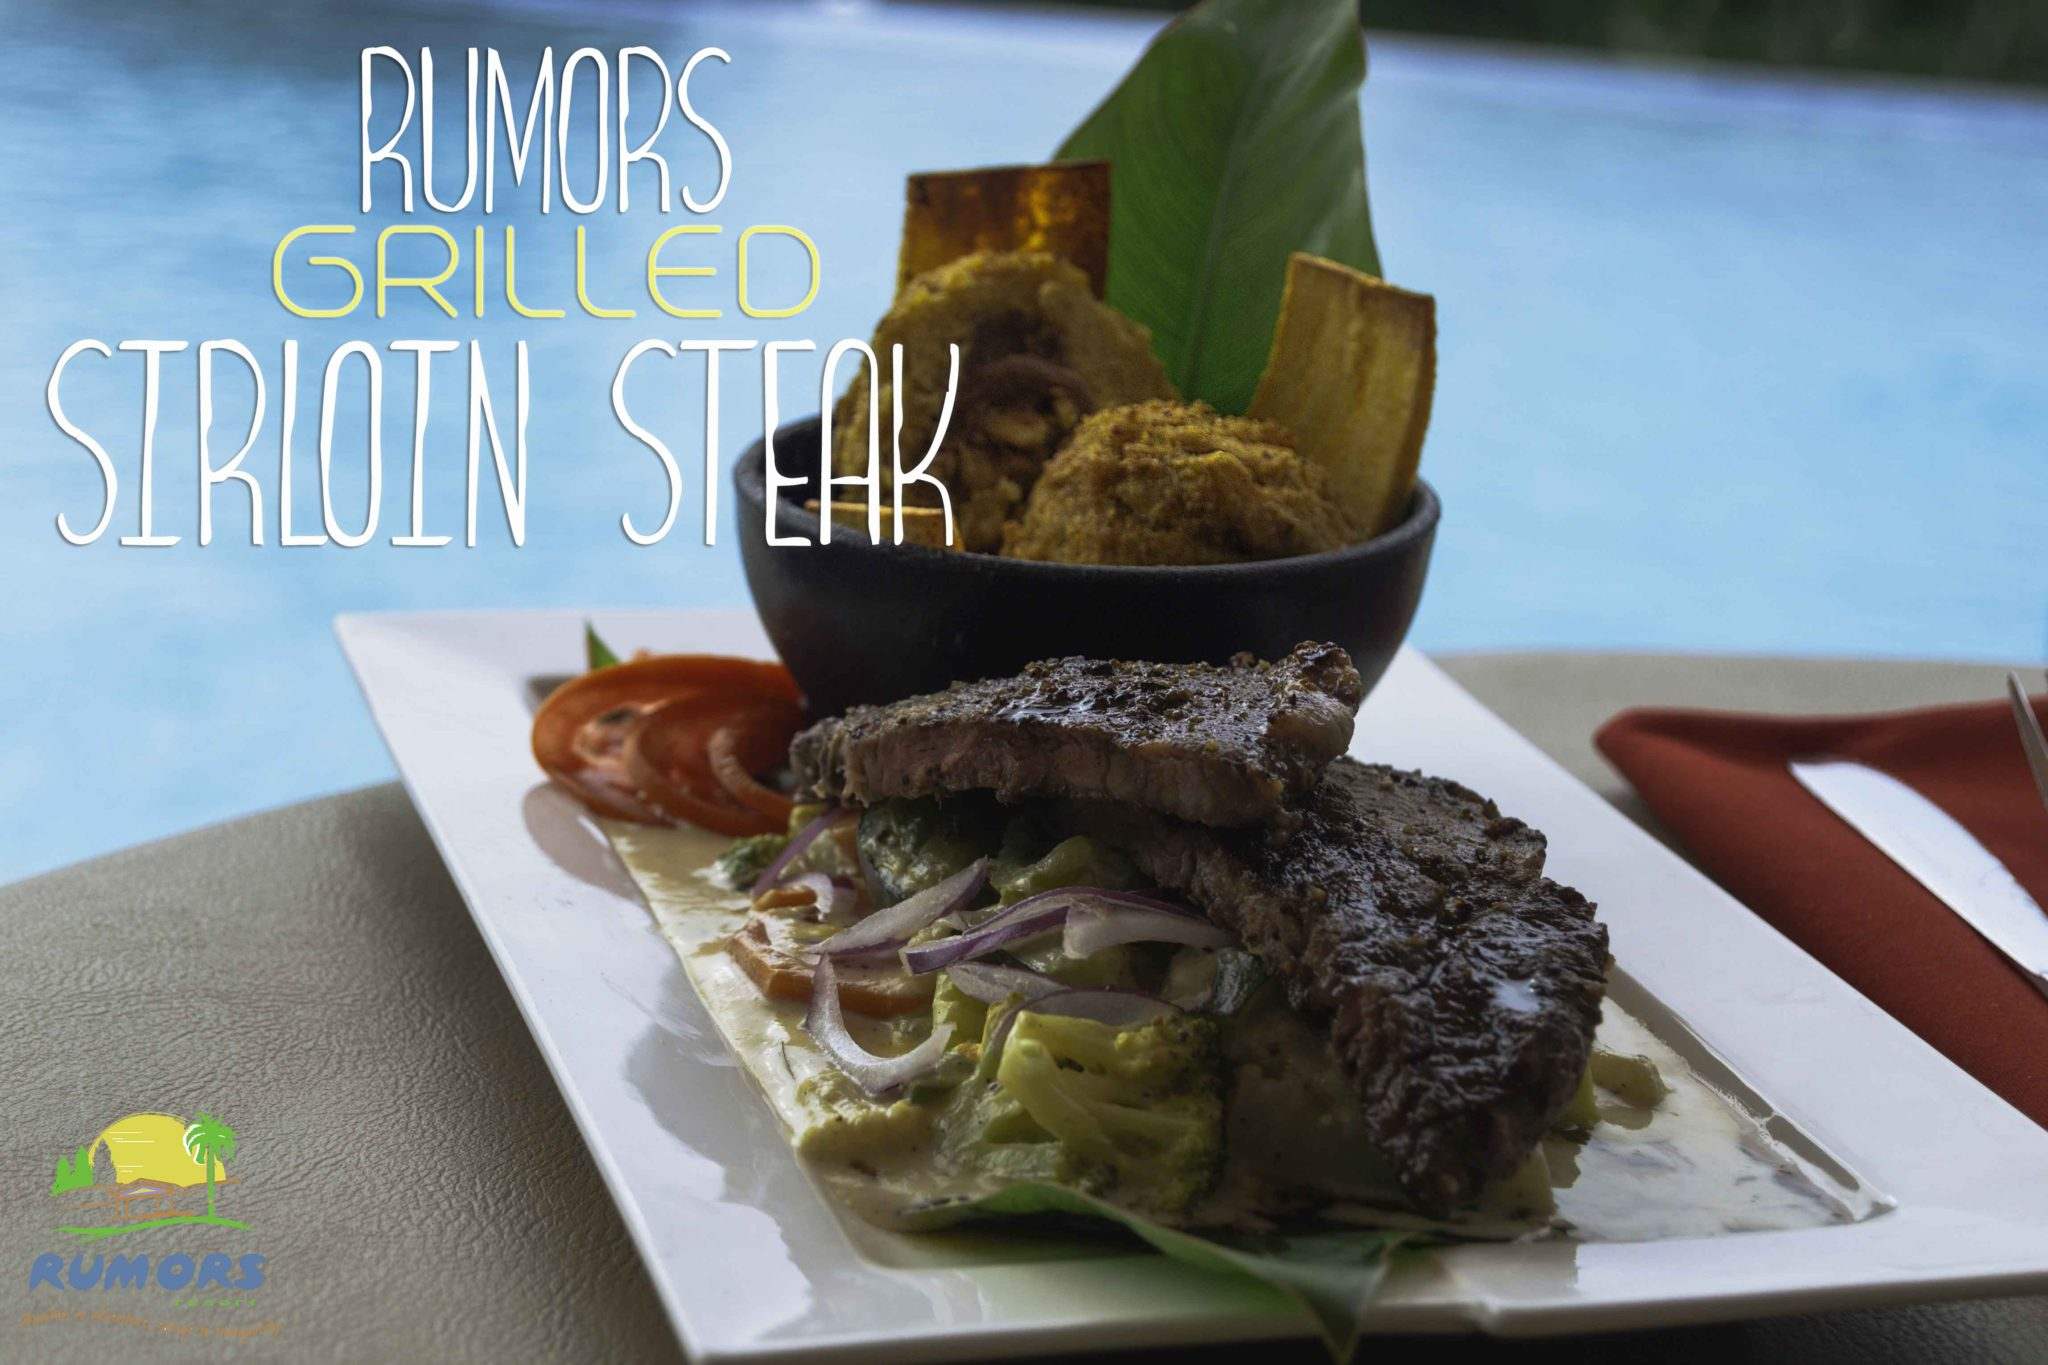 Rumors Grilled Sirloin Steak Recipe